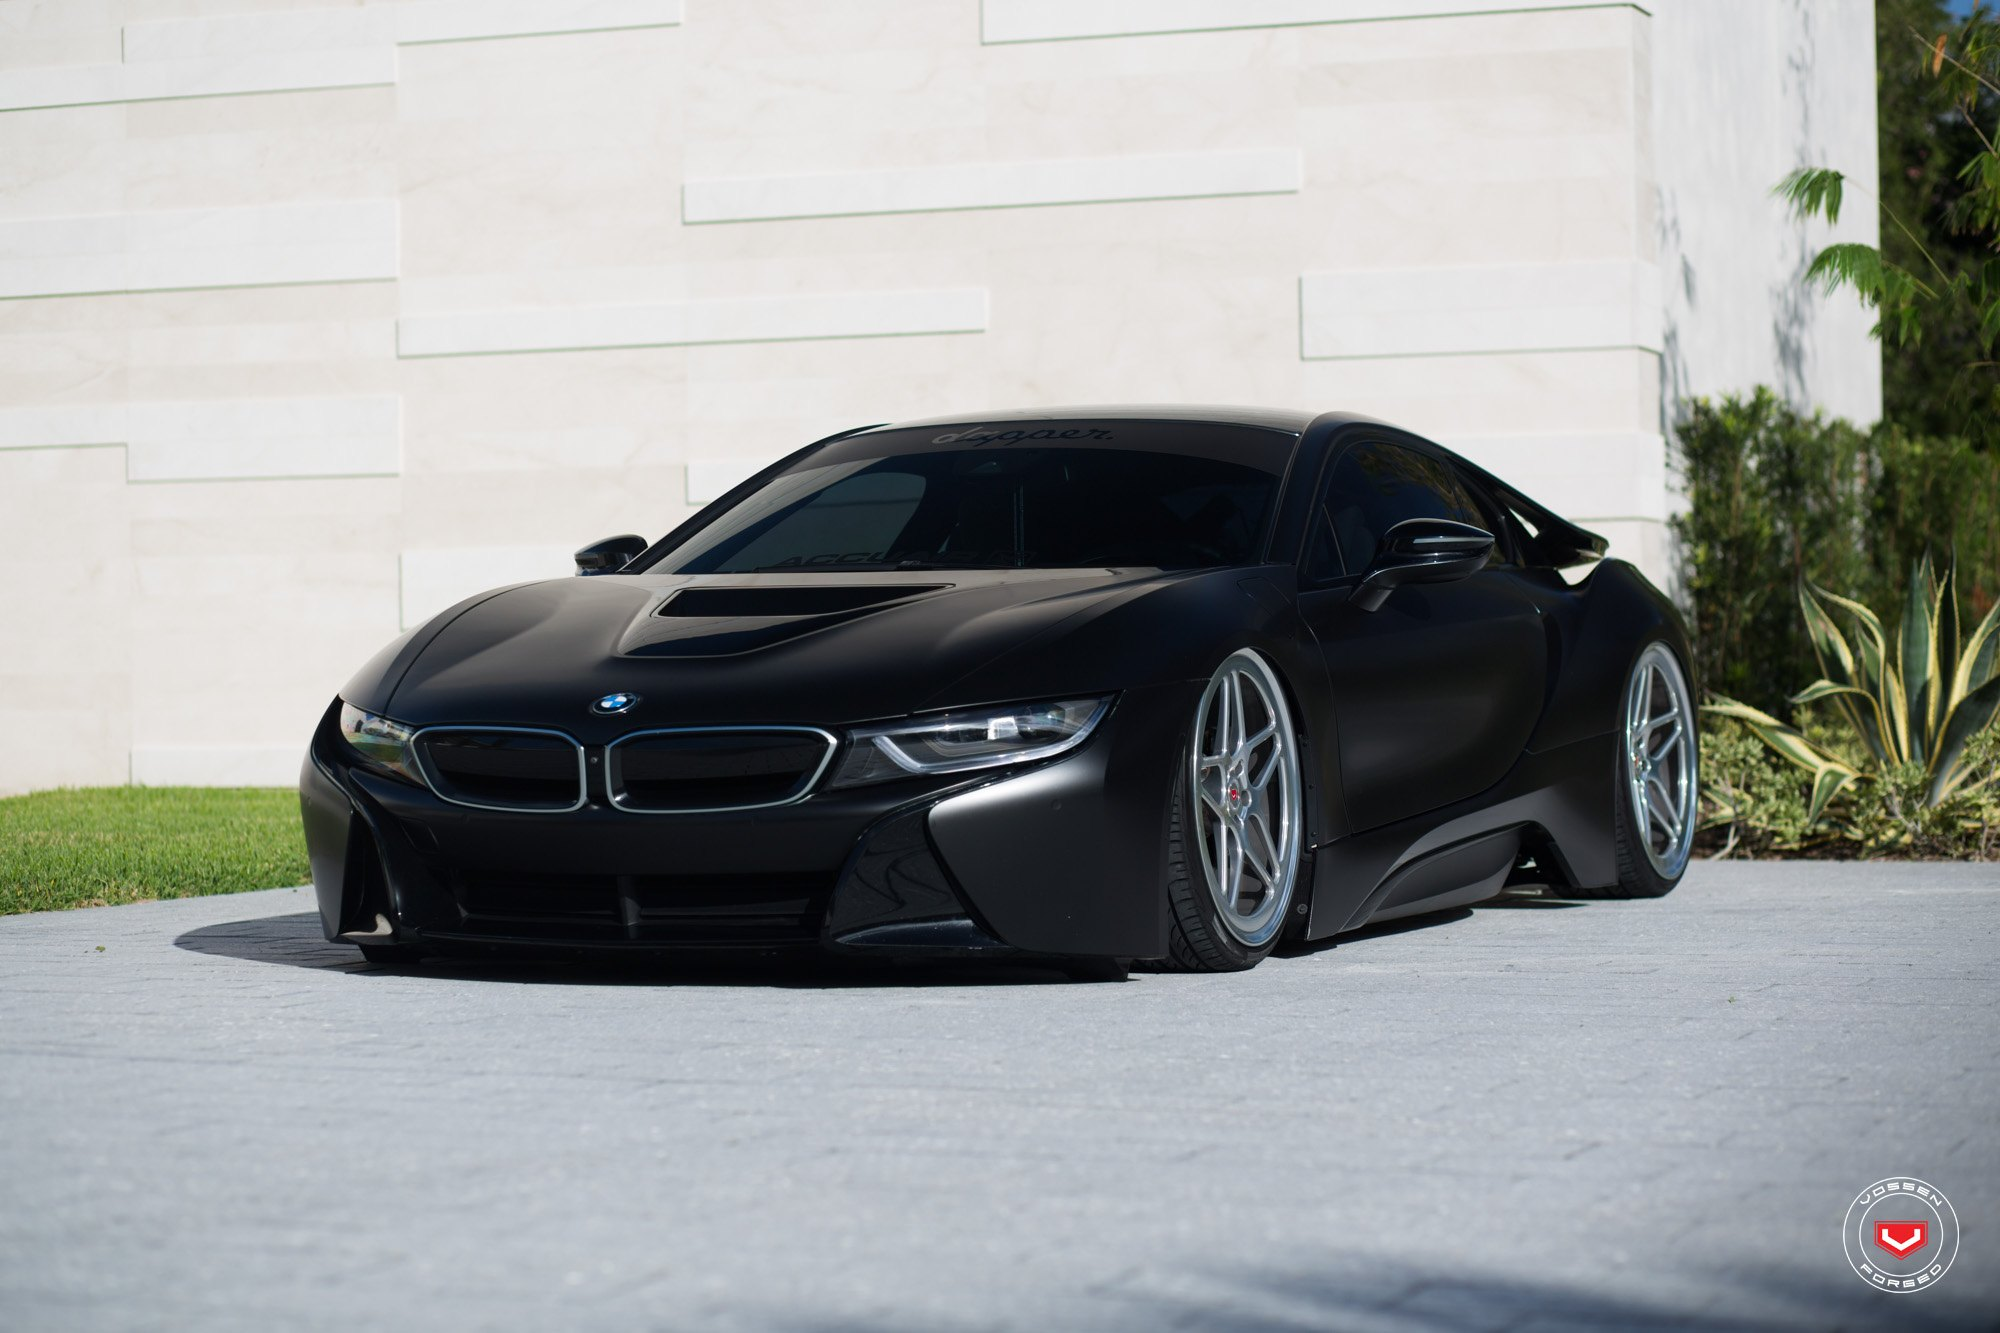 Hybrid Shark Bmw I8 On Vossen Lc101 Custom Rims Carid Com Gallery